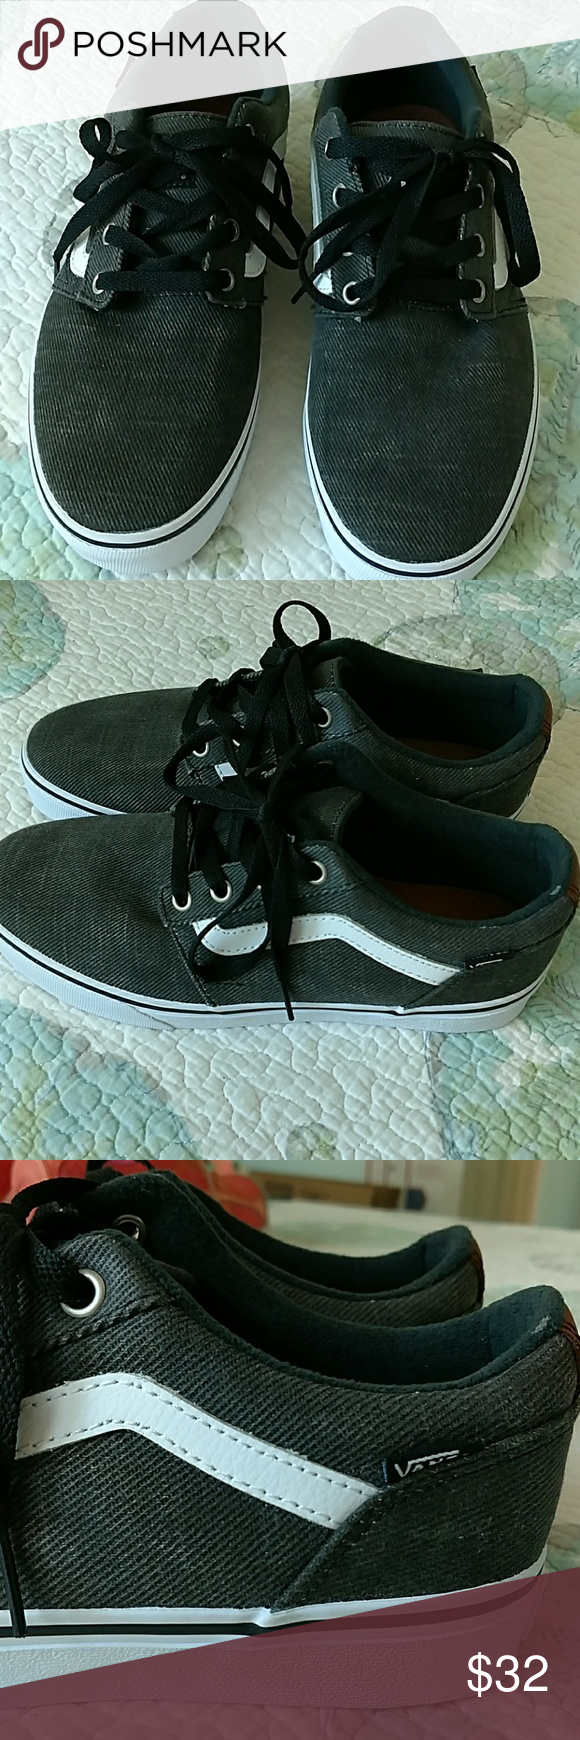 5d2be8f5bd4661 Vans off the wall sneakers New without tag excellent condition. Vans Shoes